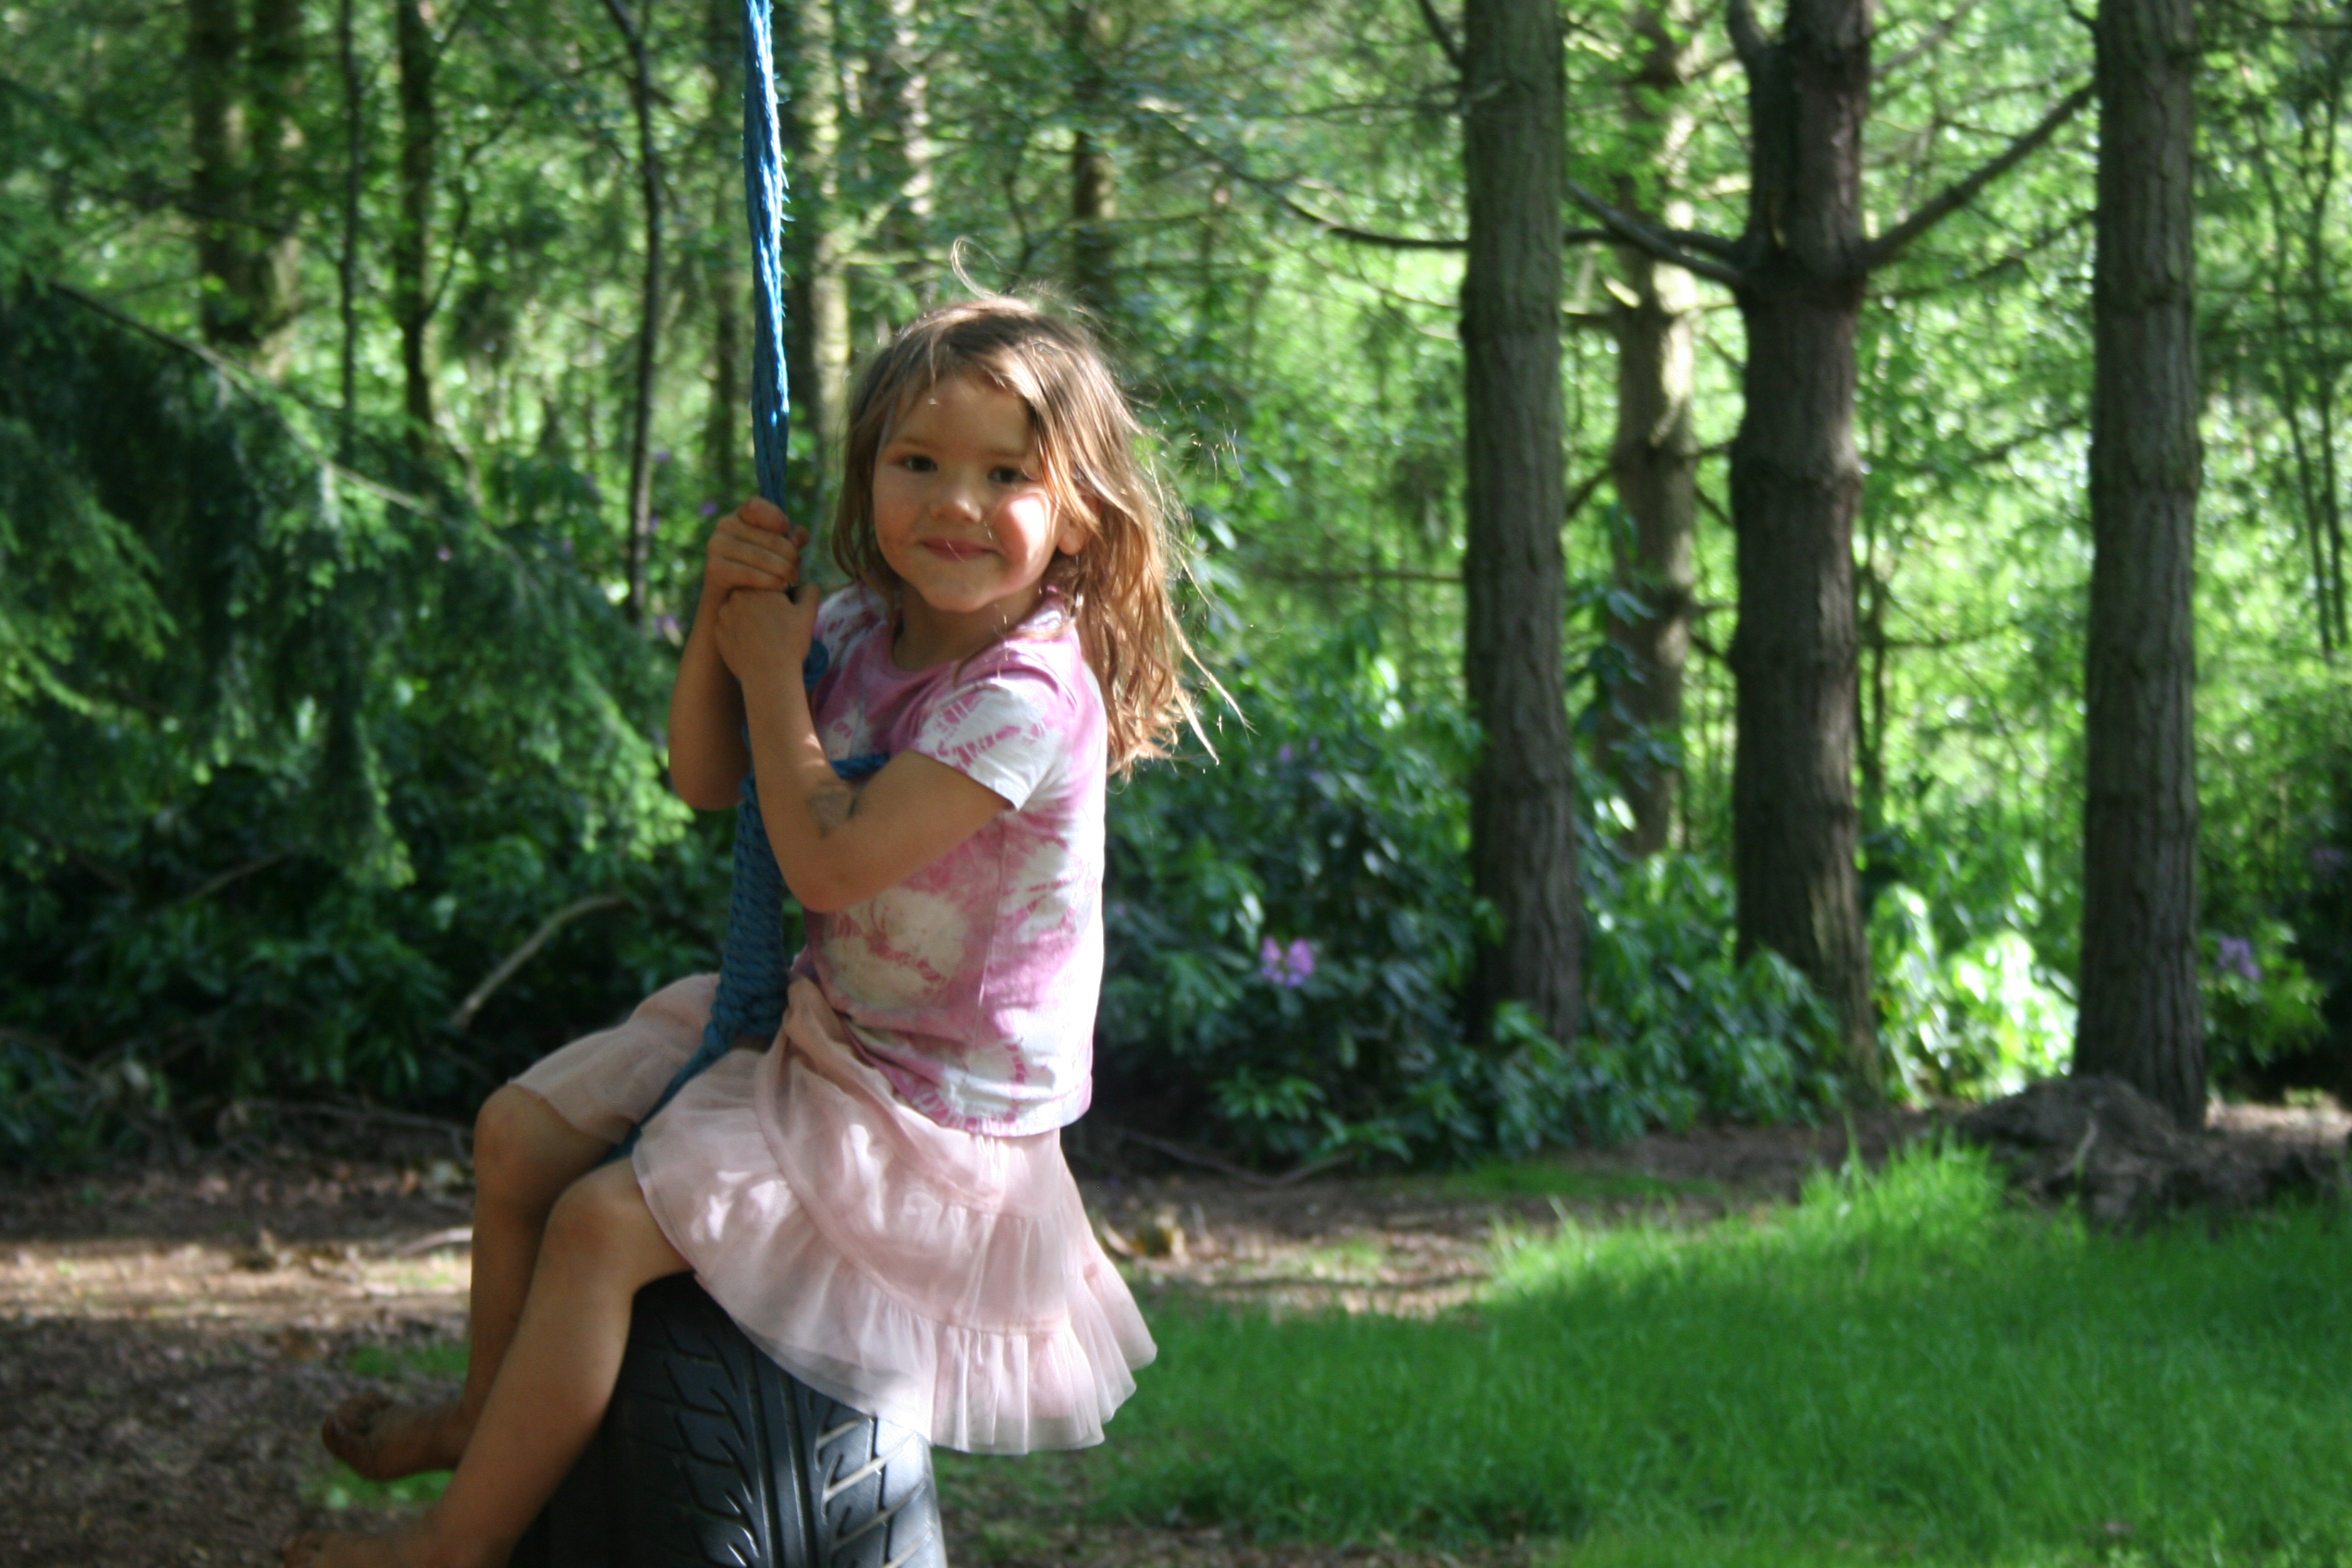 A child on a tyre swing in woodland